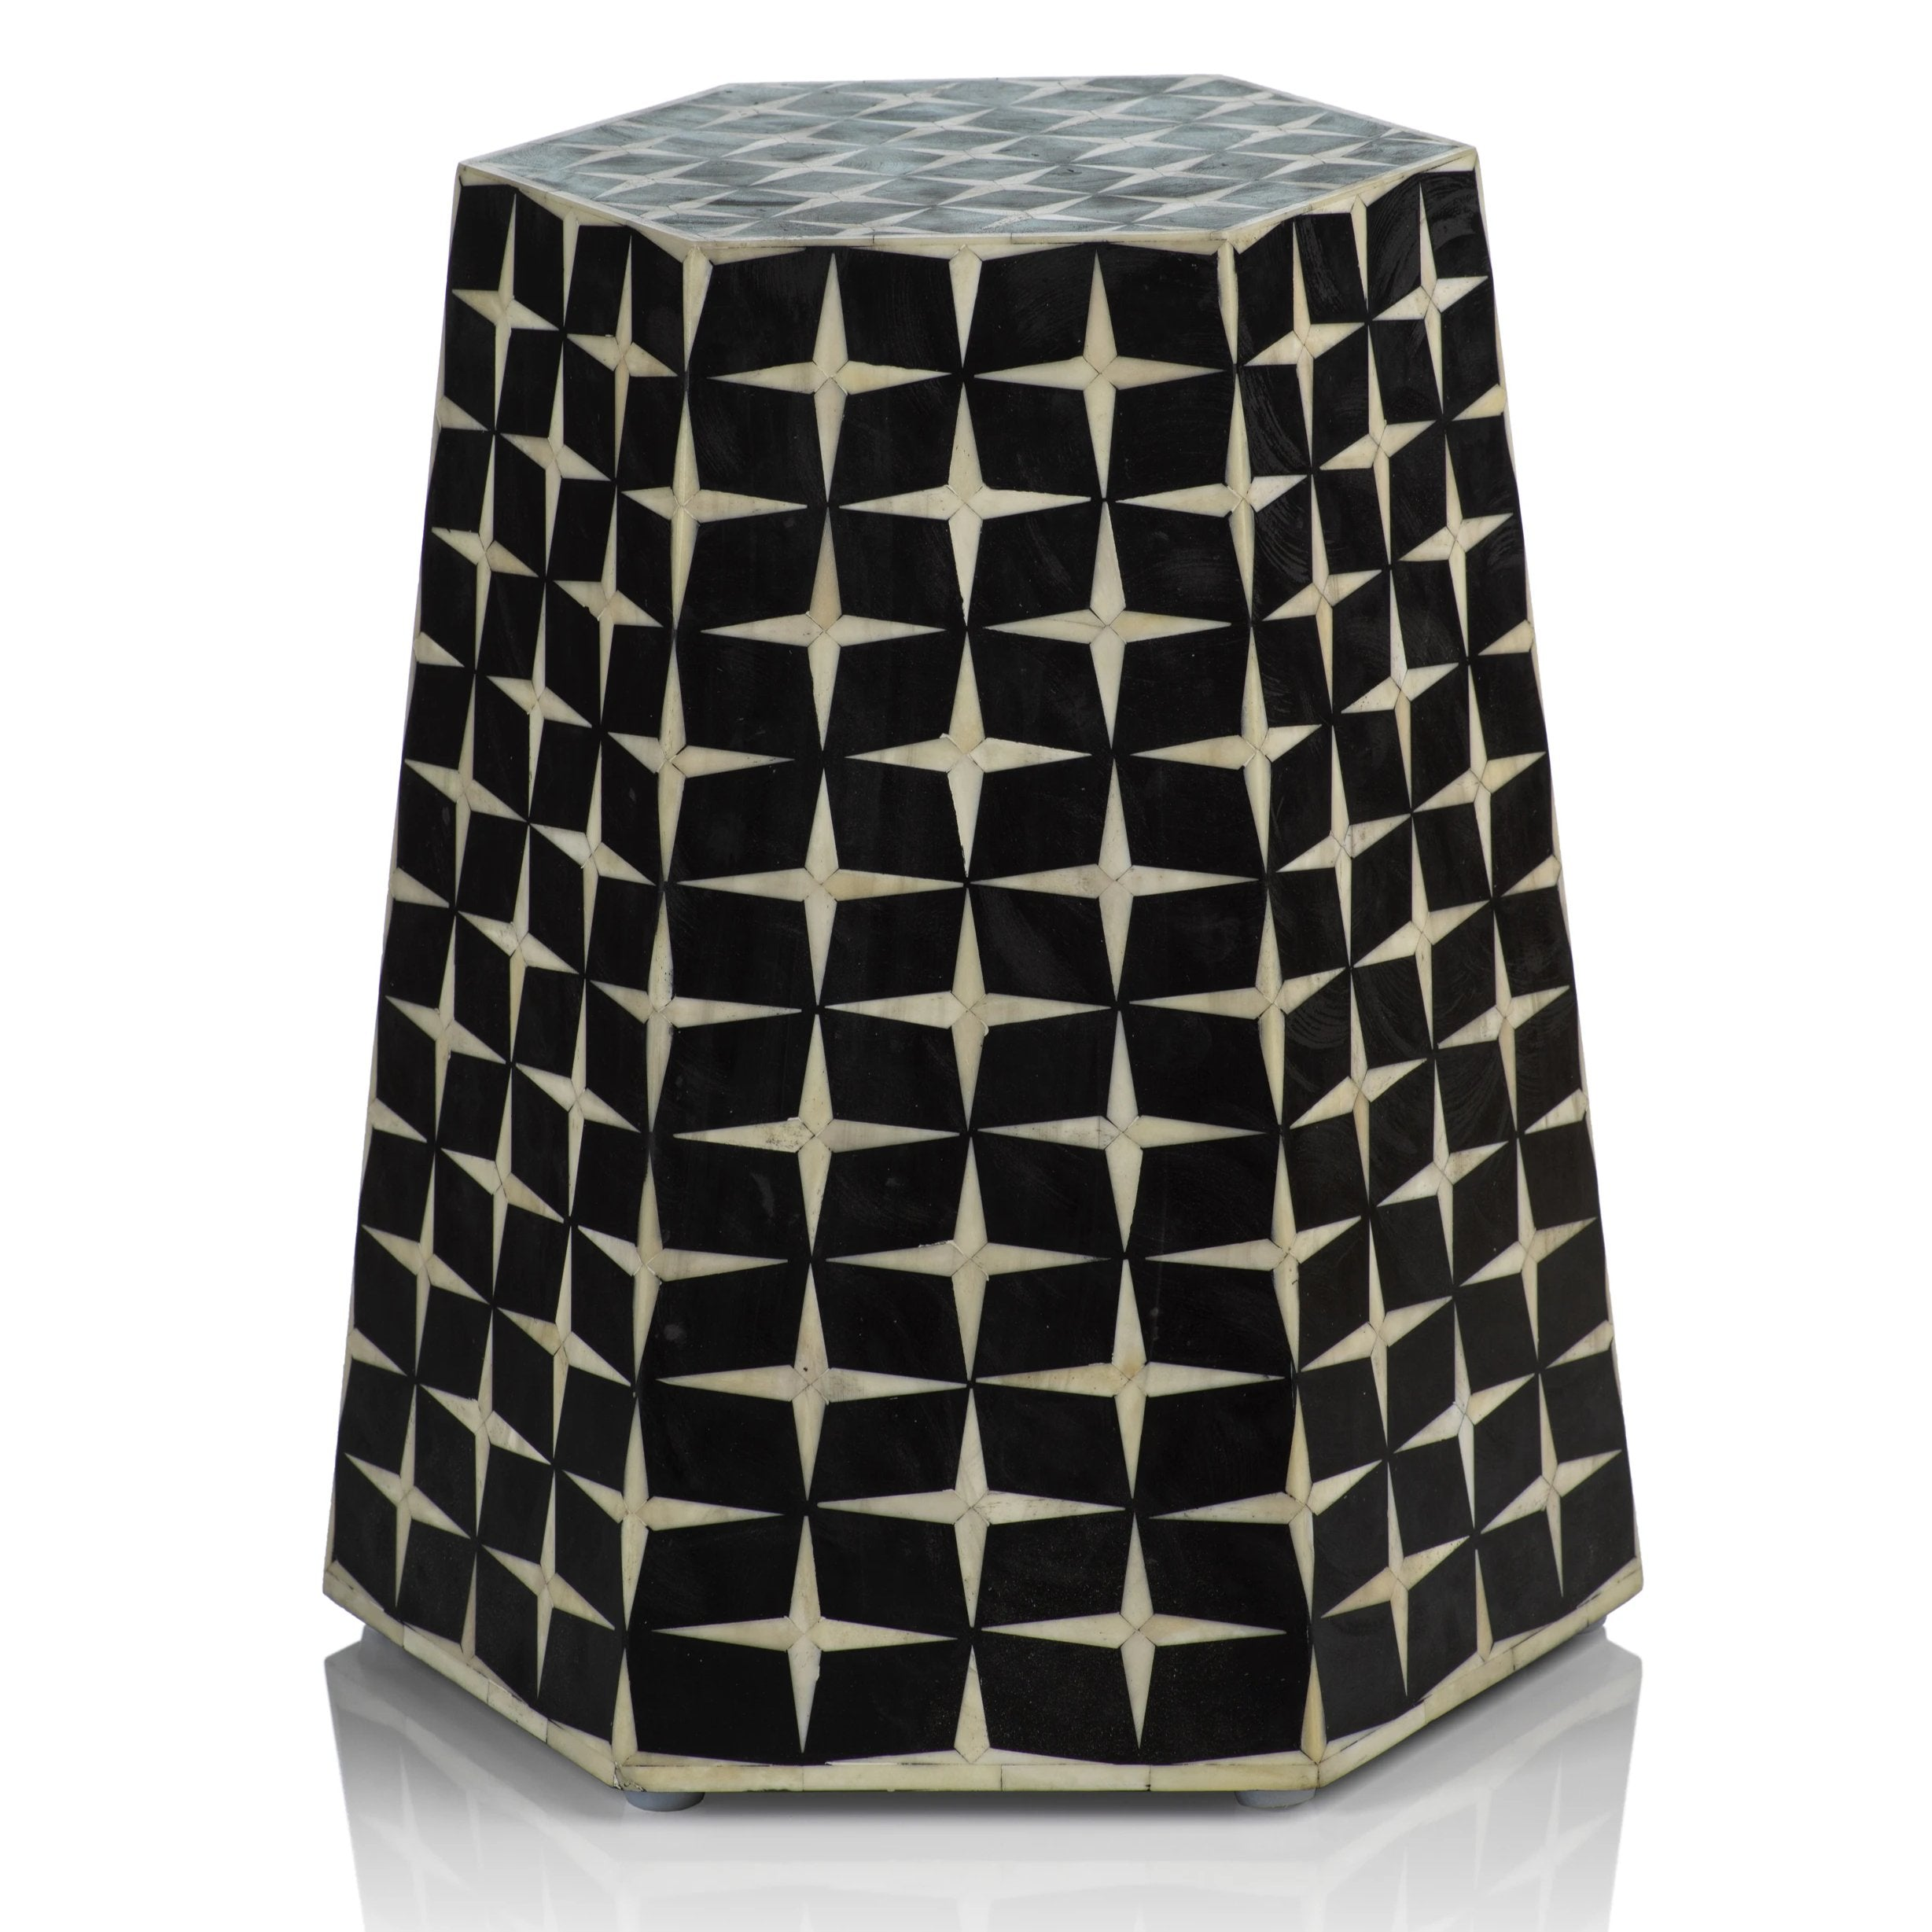 Kasbah Bone Inlay Hexagon Stool - CARLYLE AVENUE